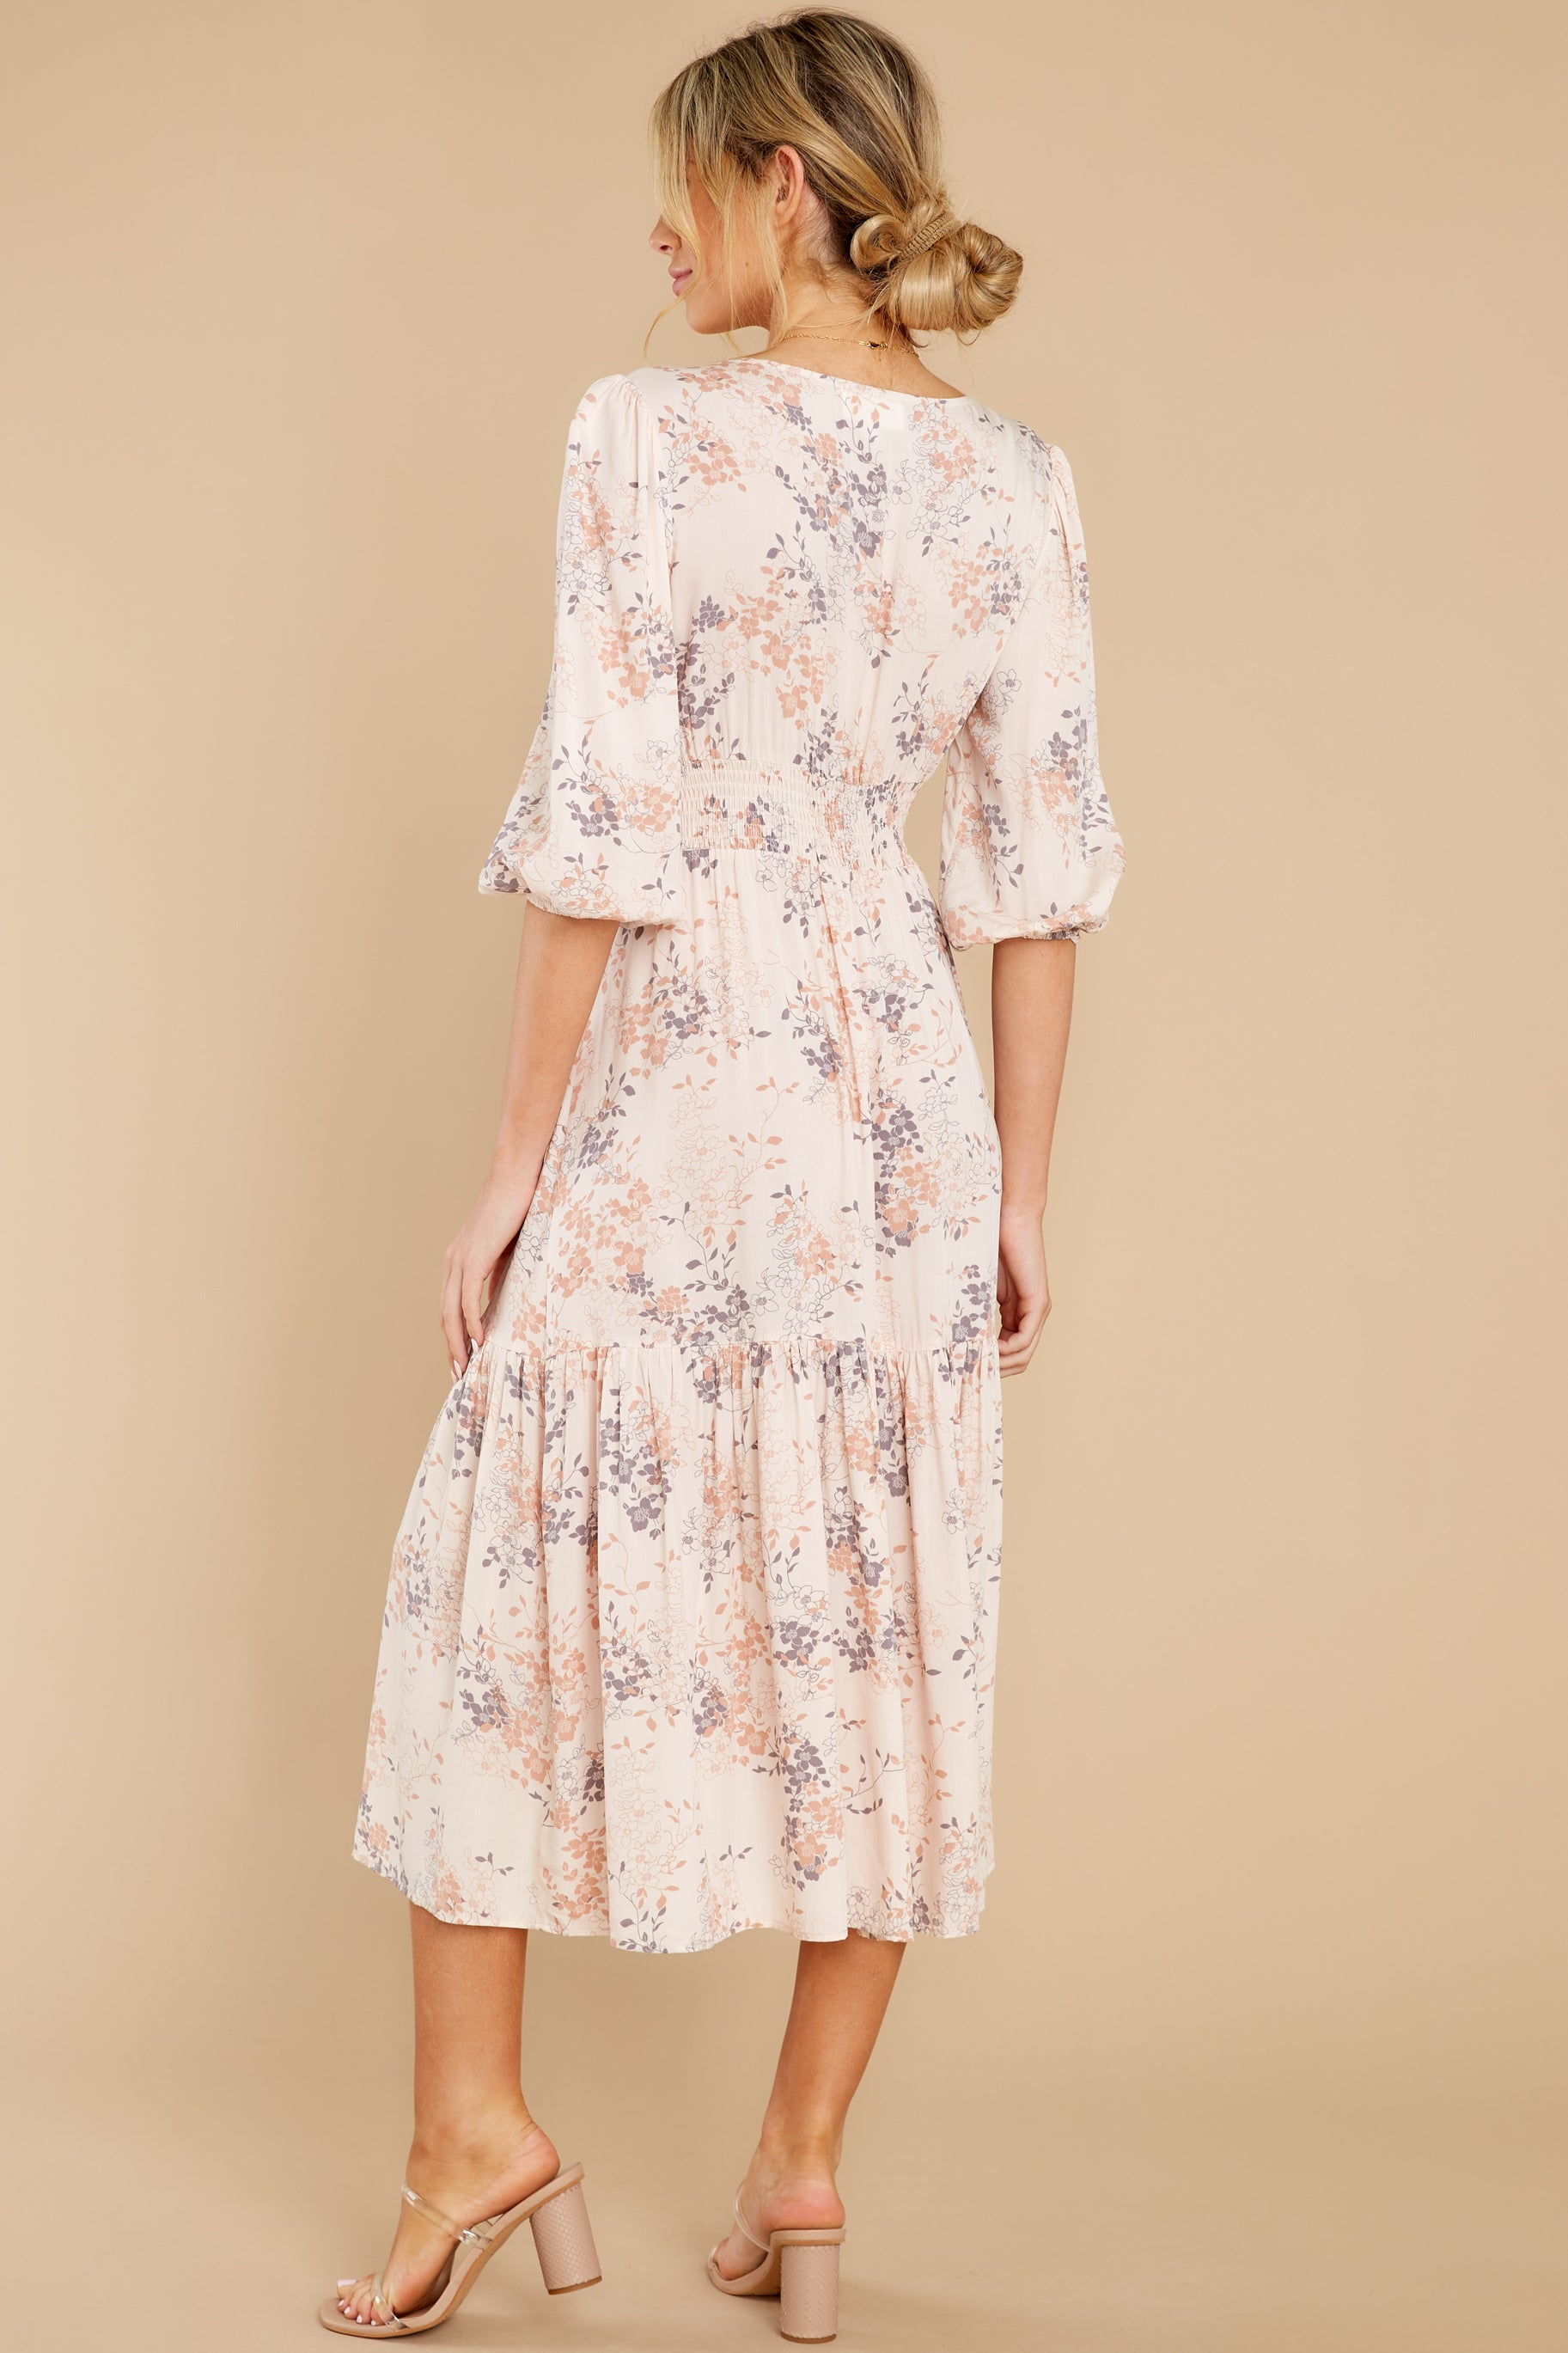 8 Love You More Blush Floral Print Maxi Dress at reddress.com